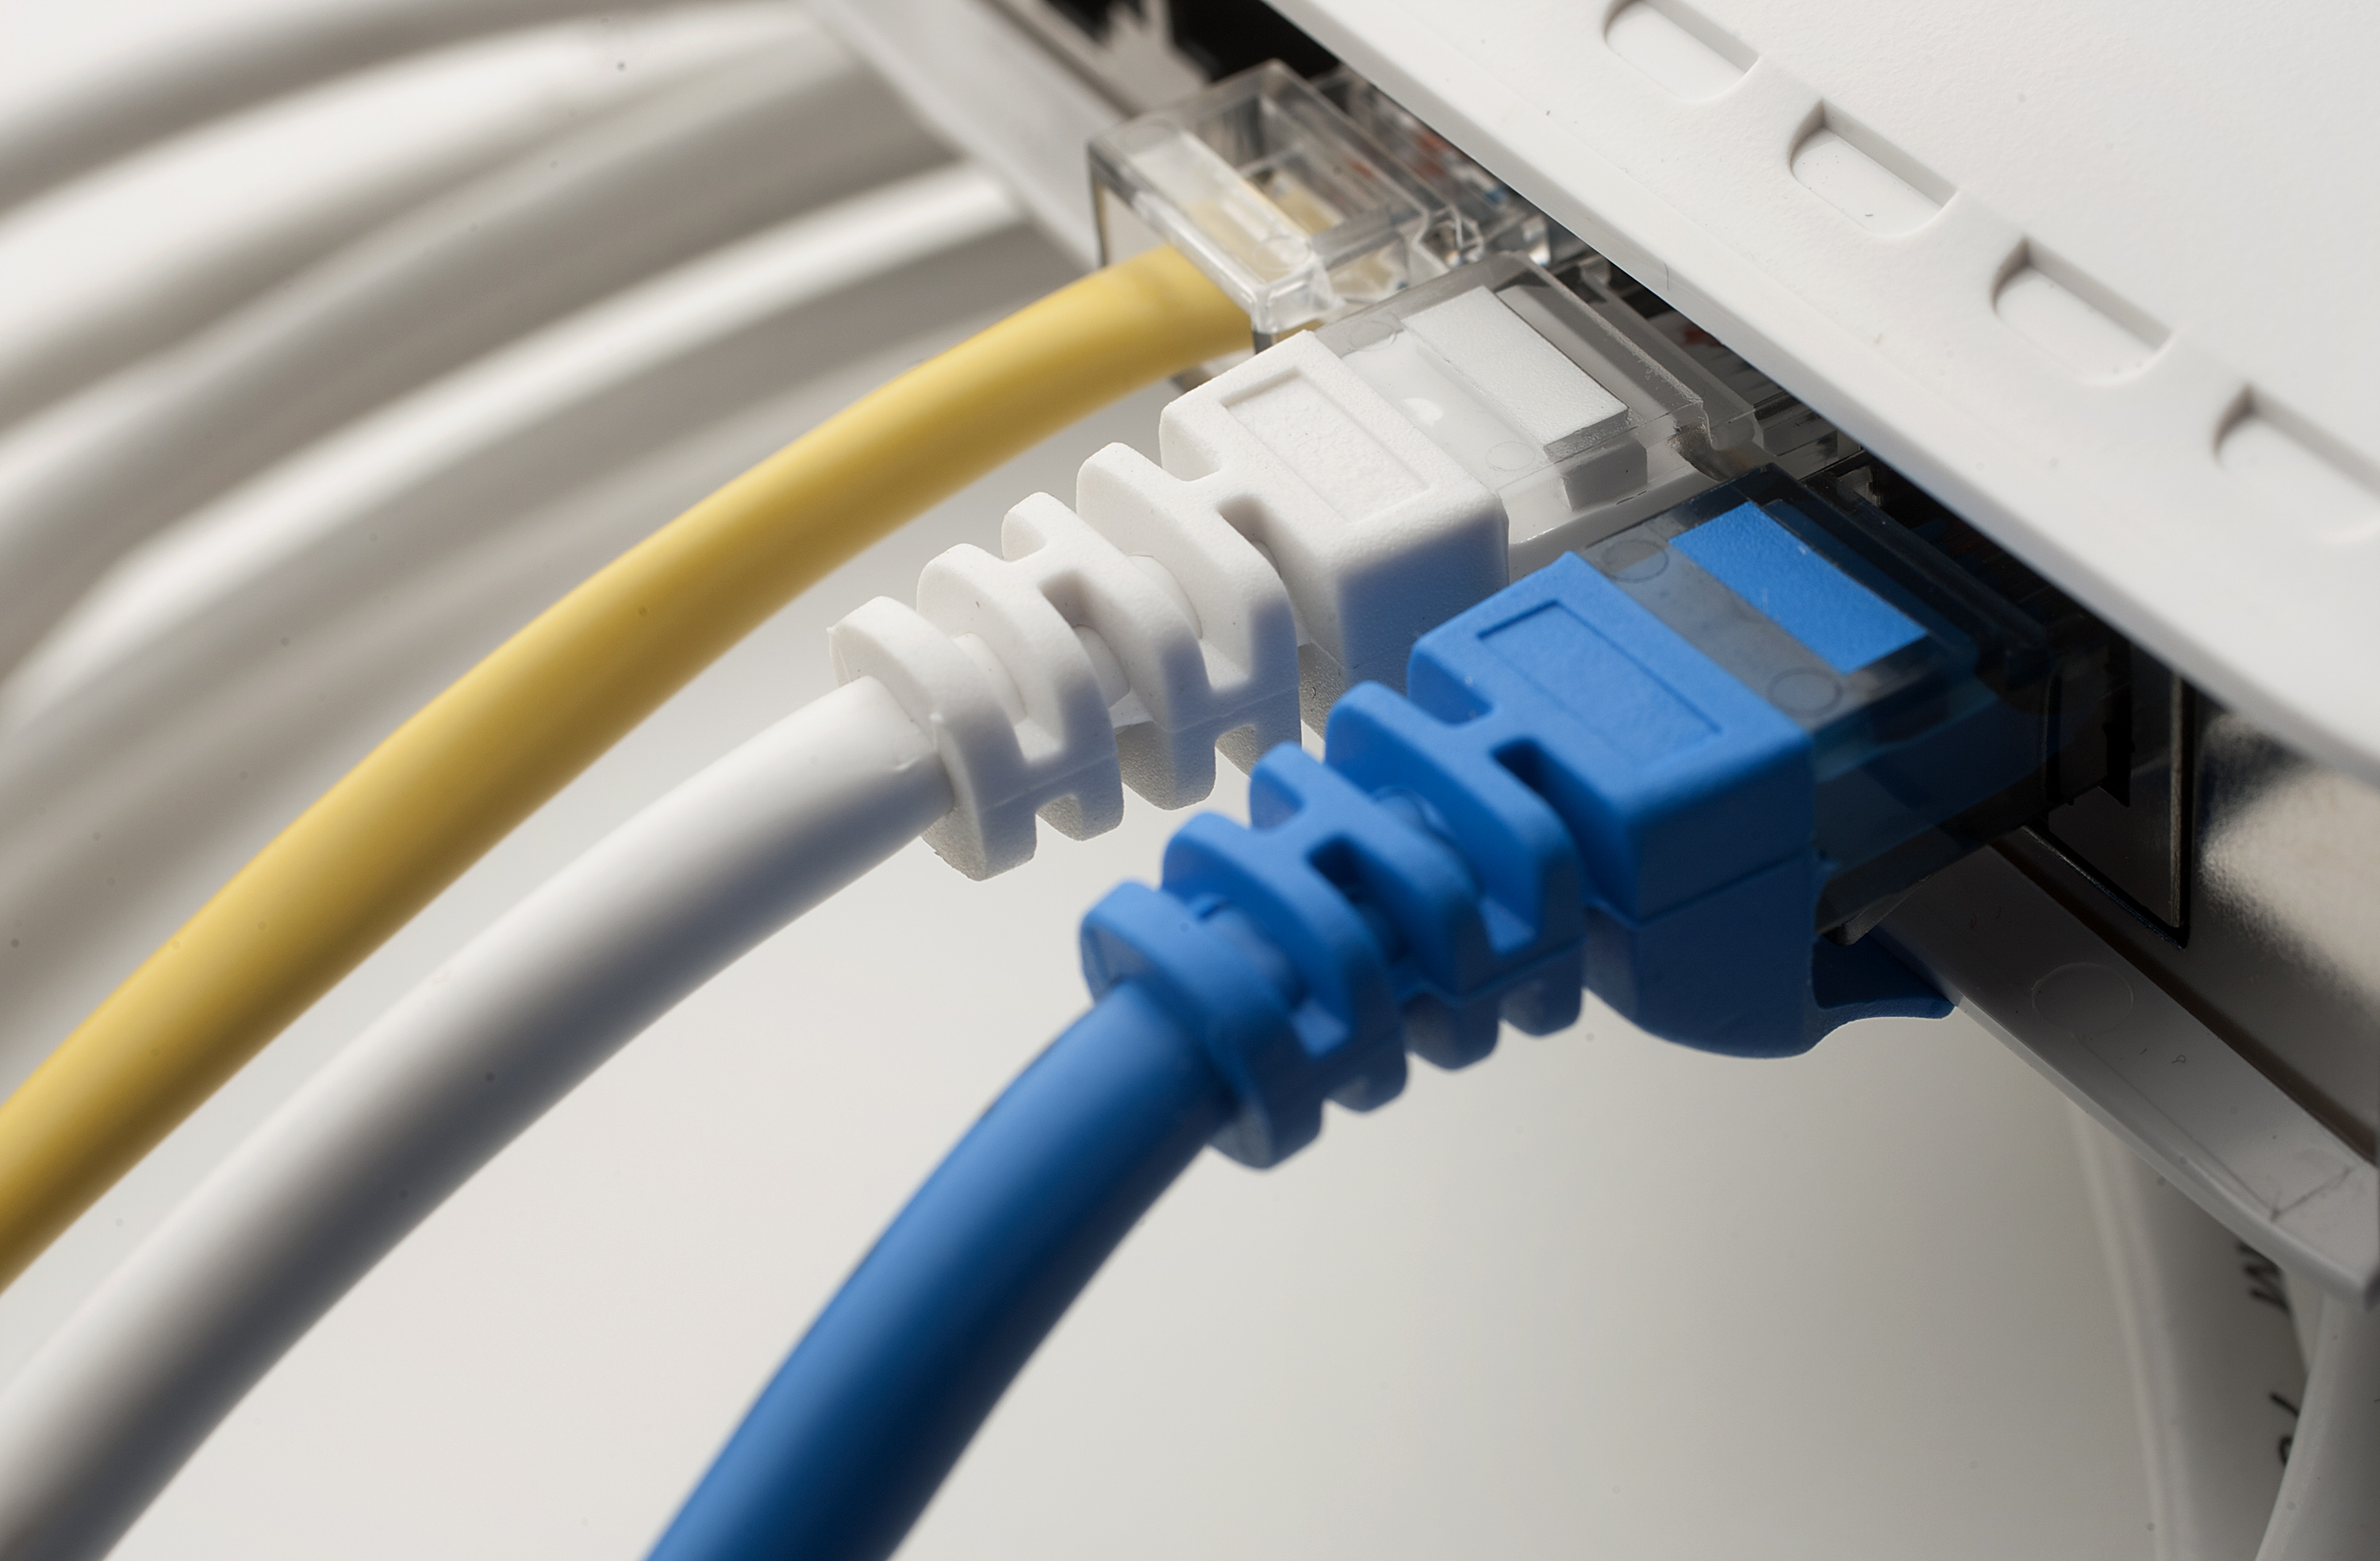 Ethernet cords are arranged for a photograph in New York, U.S., on Friday, Feb. 10, 2012.